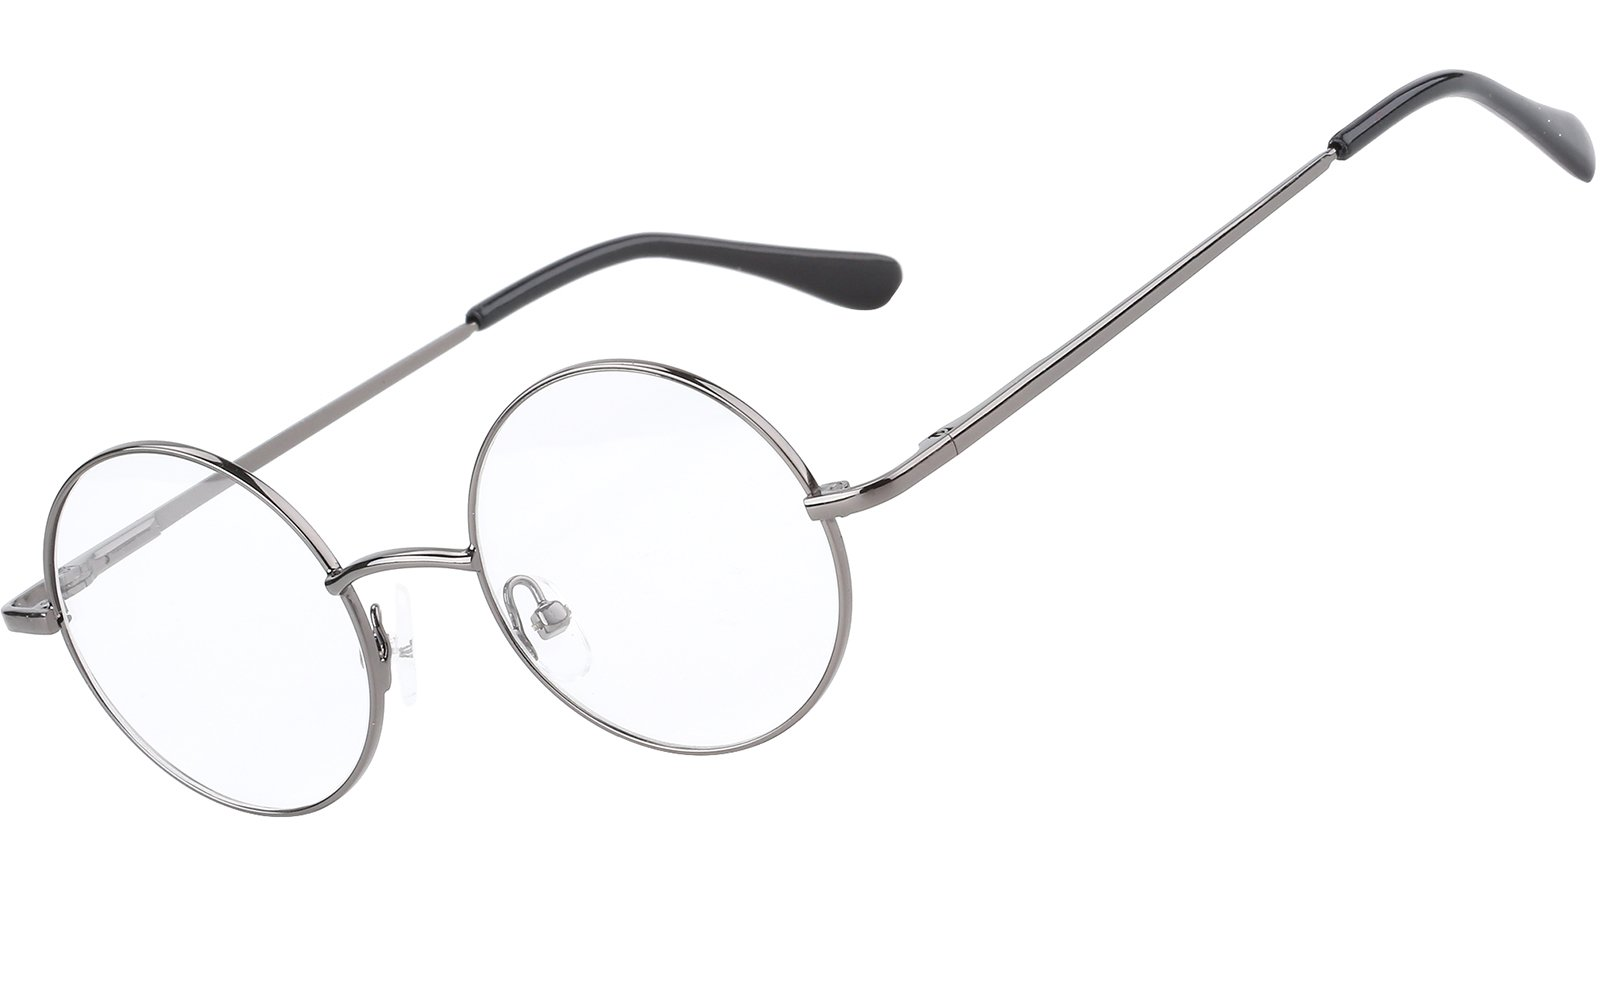 Agstum Retro Round Prescription ready Metal Eyeglass Frame (Small Size) (Grey) by Agstum